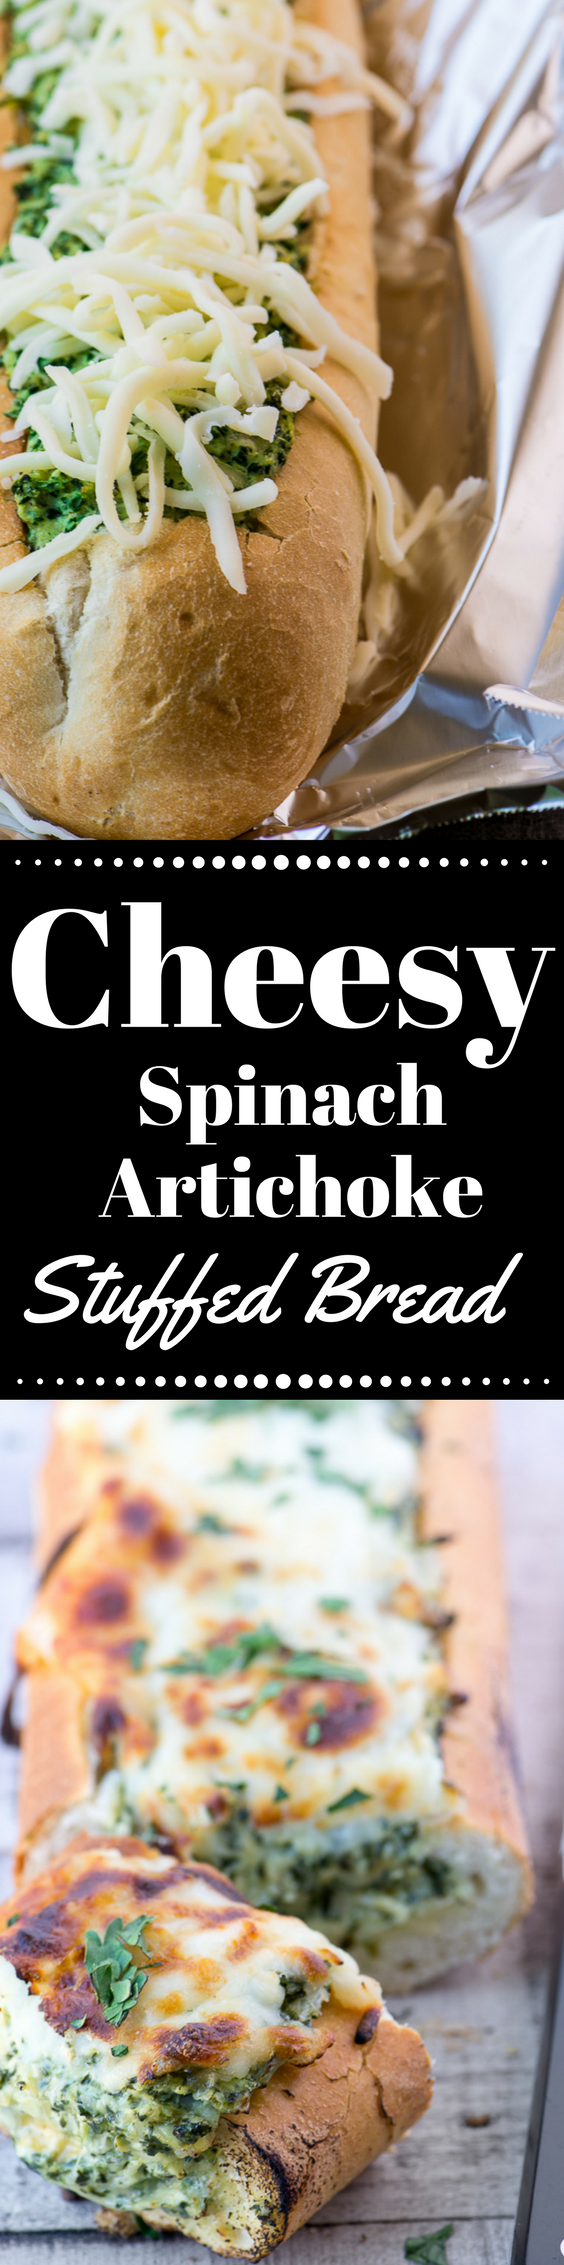 Cheesy Spinach Artichoke Bread is the perfect appetizer package….everybody's favorite garlicky, cheesy dip all hot and bubbly and ready-stuffed into a crunchy baguette. Slice it up and watch it disappear. #appetizer #cheesebread #spinachartichokedip #partyfood #stuffed #hotappetizer